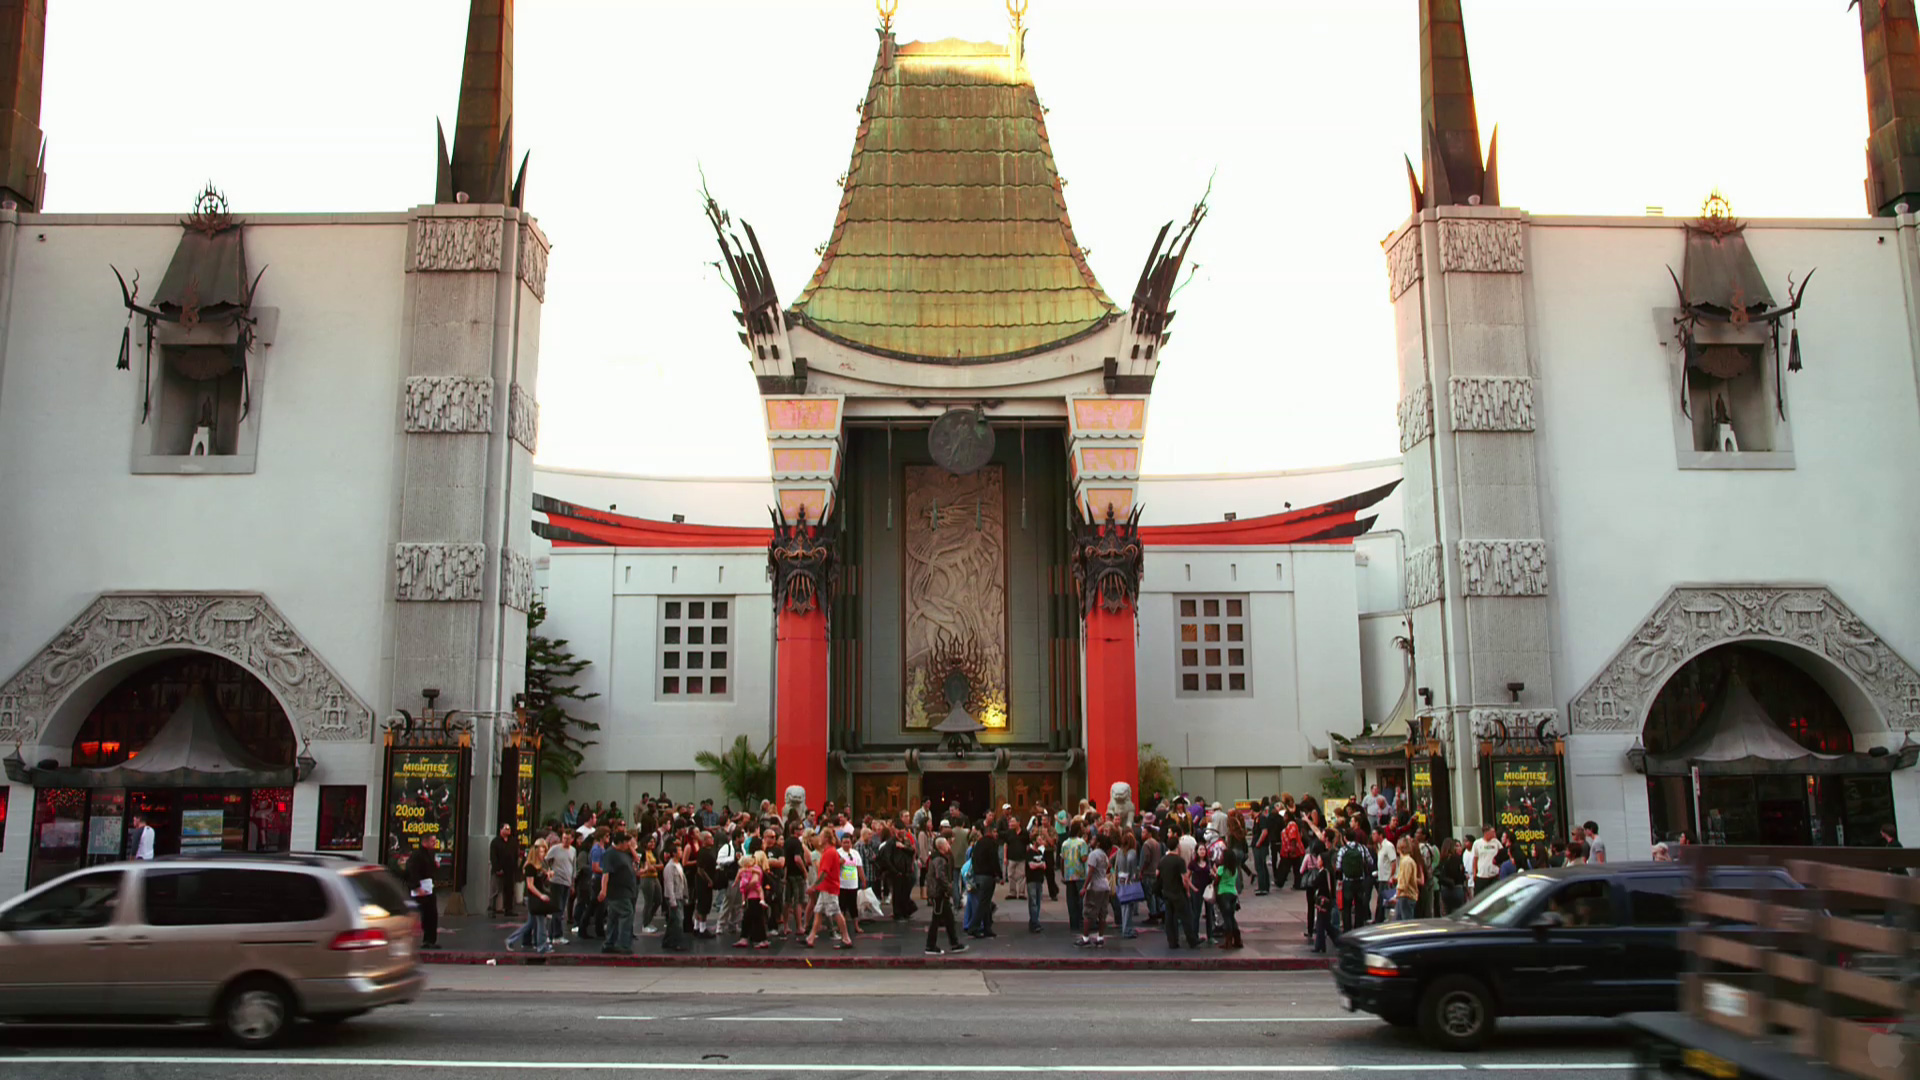 Grauman's Chinese Theater crowded